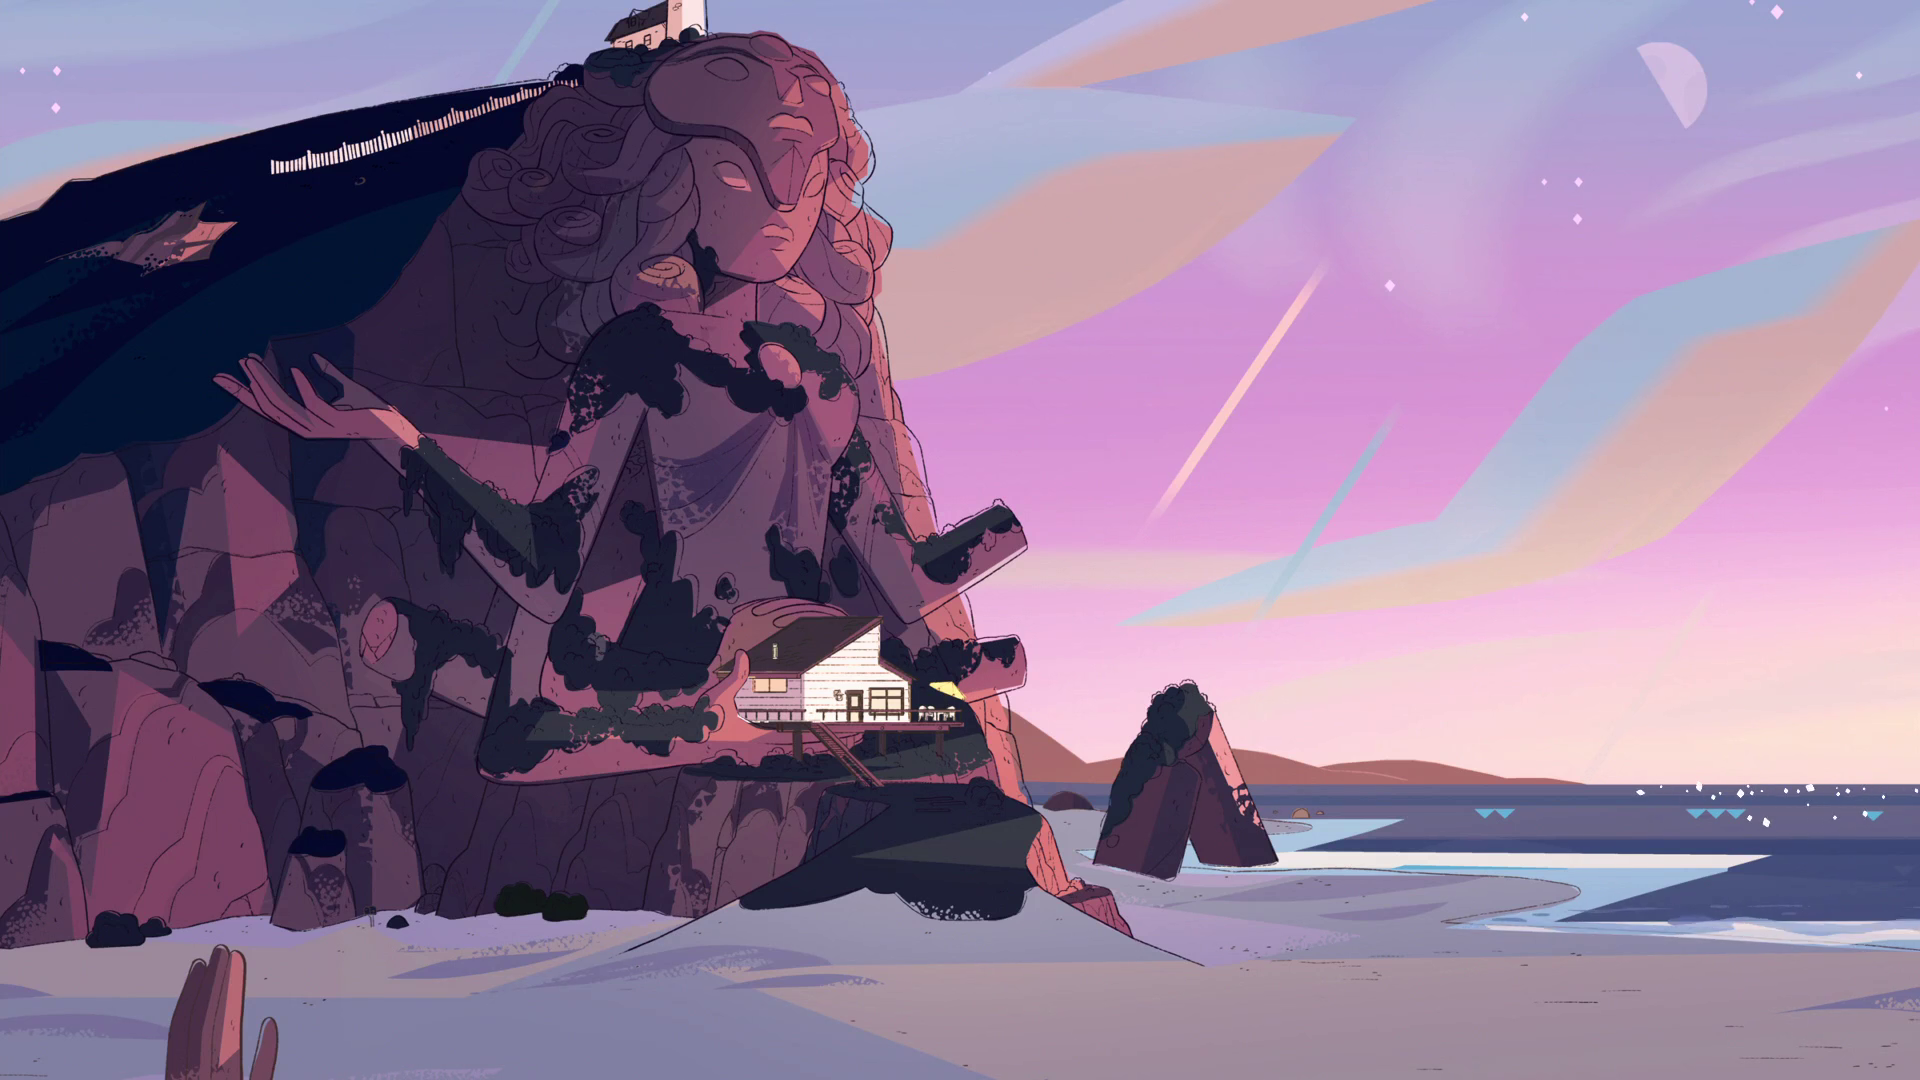 steven universe images SU Wallpaper HD wallpaper and background photos